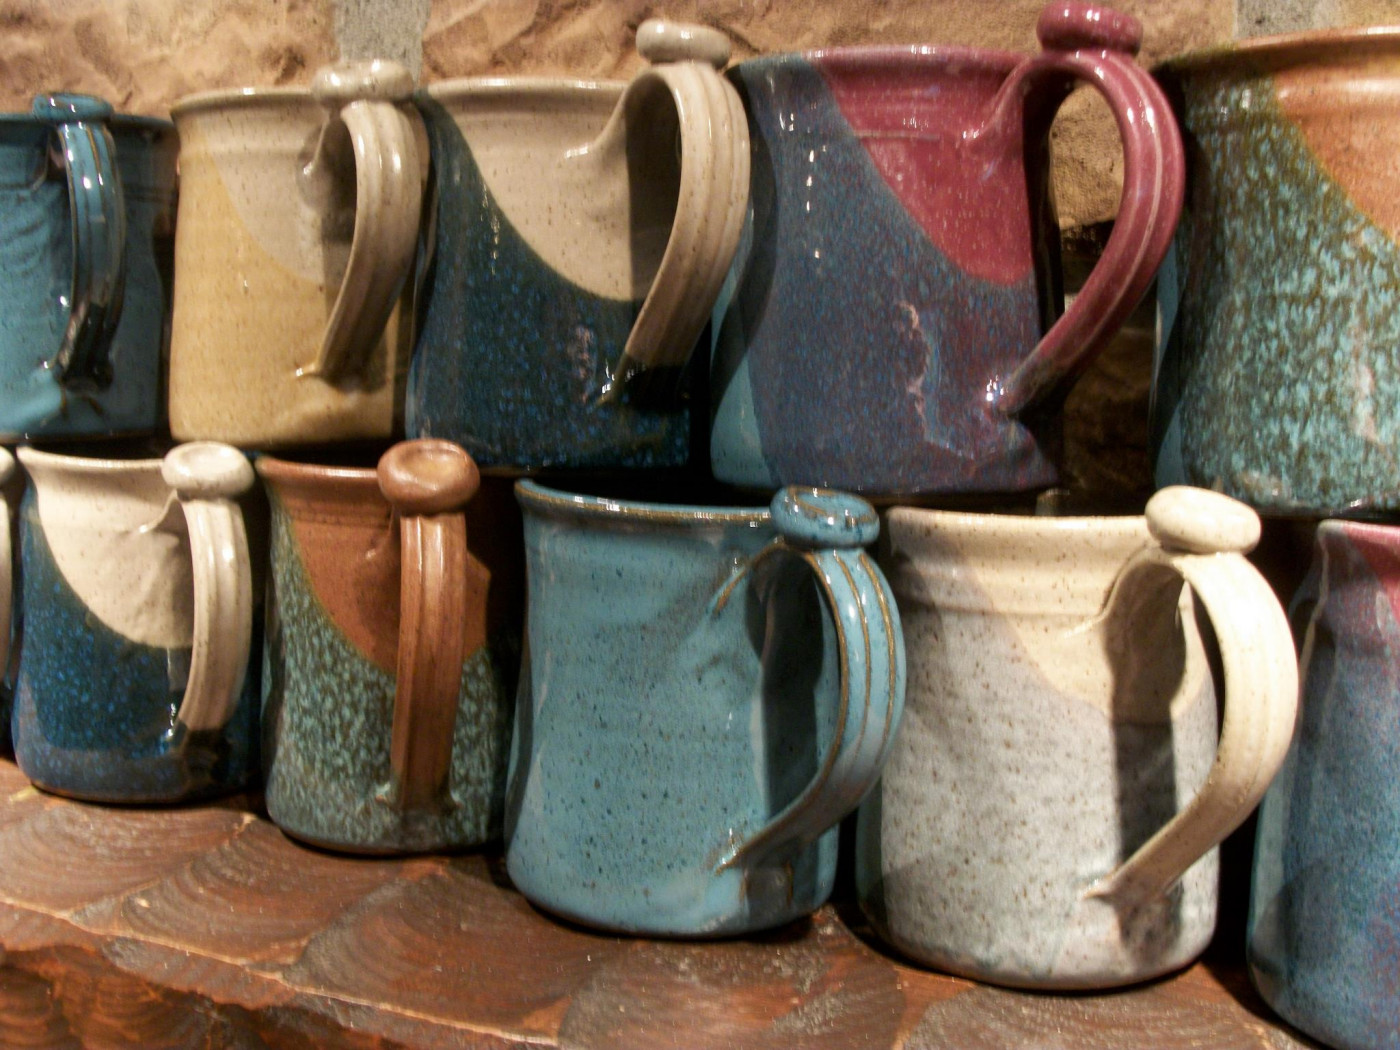 A line of mugs from the Greg Rudd Pottery Studio